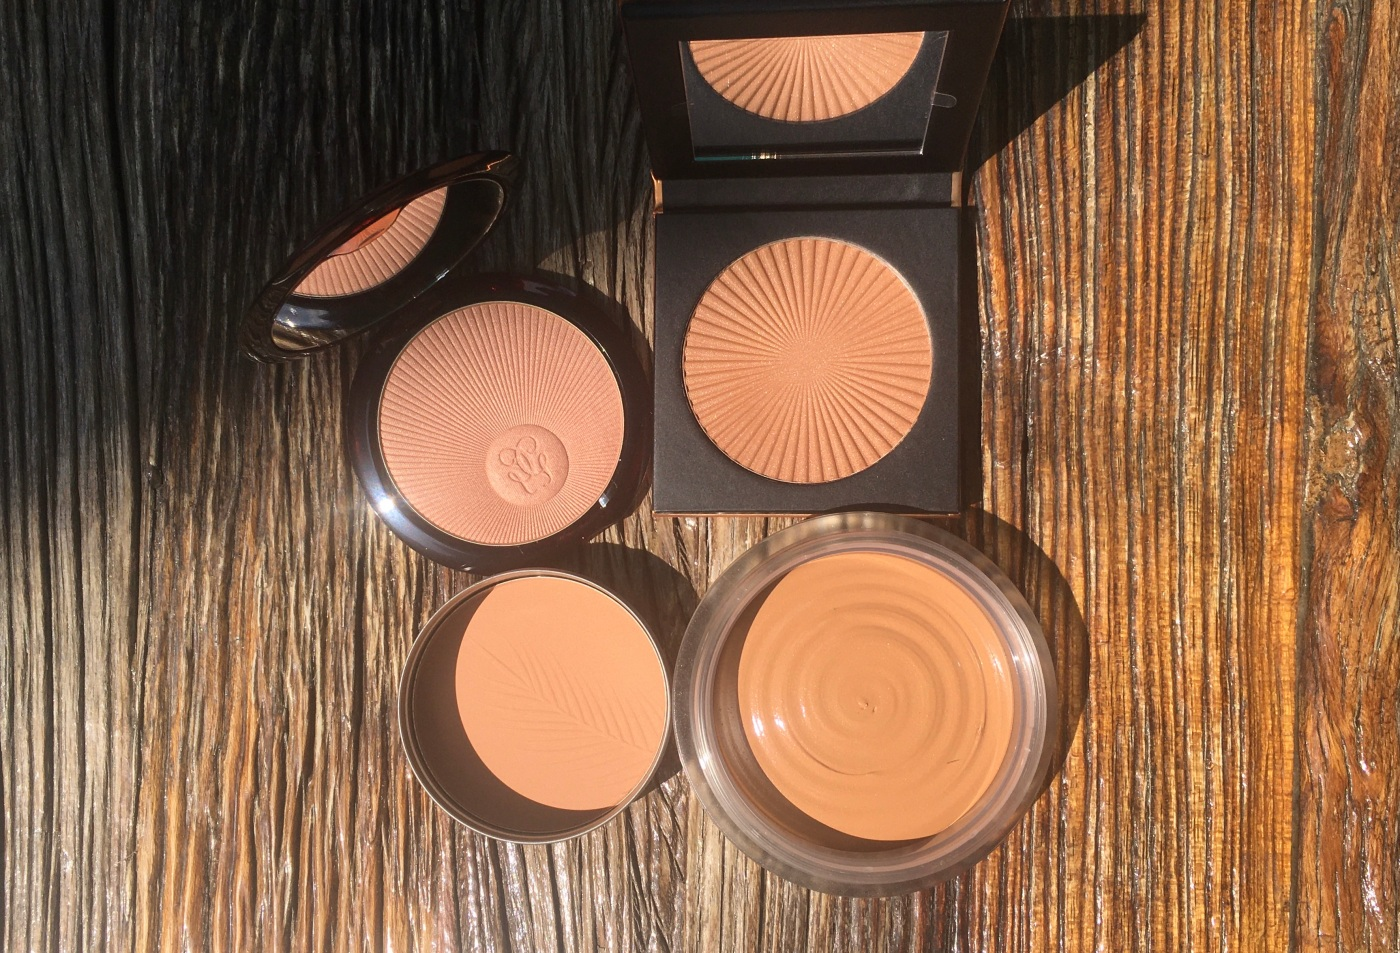 chanel terracotta guerlain the bodyshop be creative make-up bronzing powder bronzer